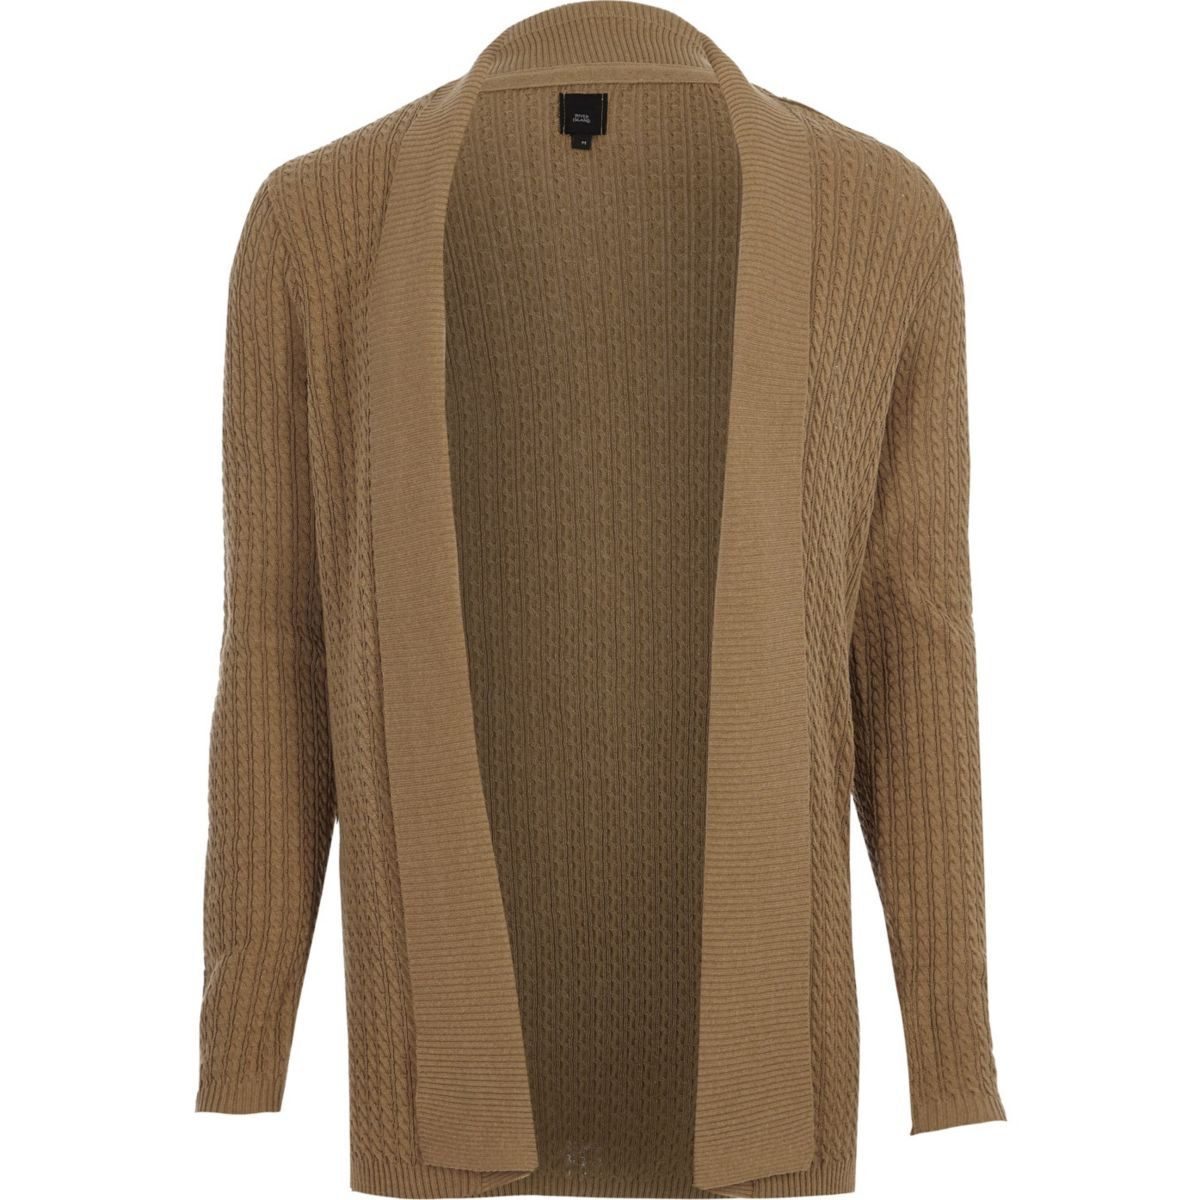 Light brown cable knit open front cardigan - Cardigans - Jumpers ...